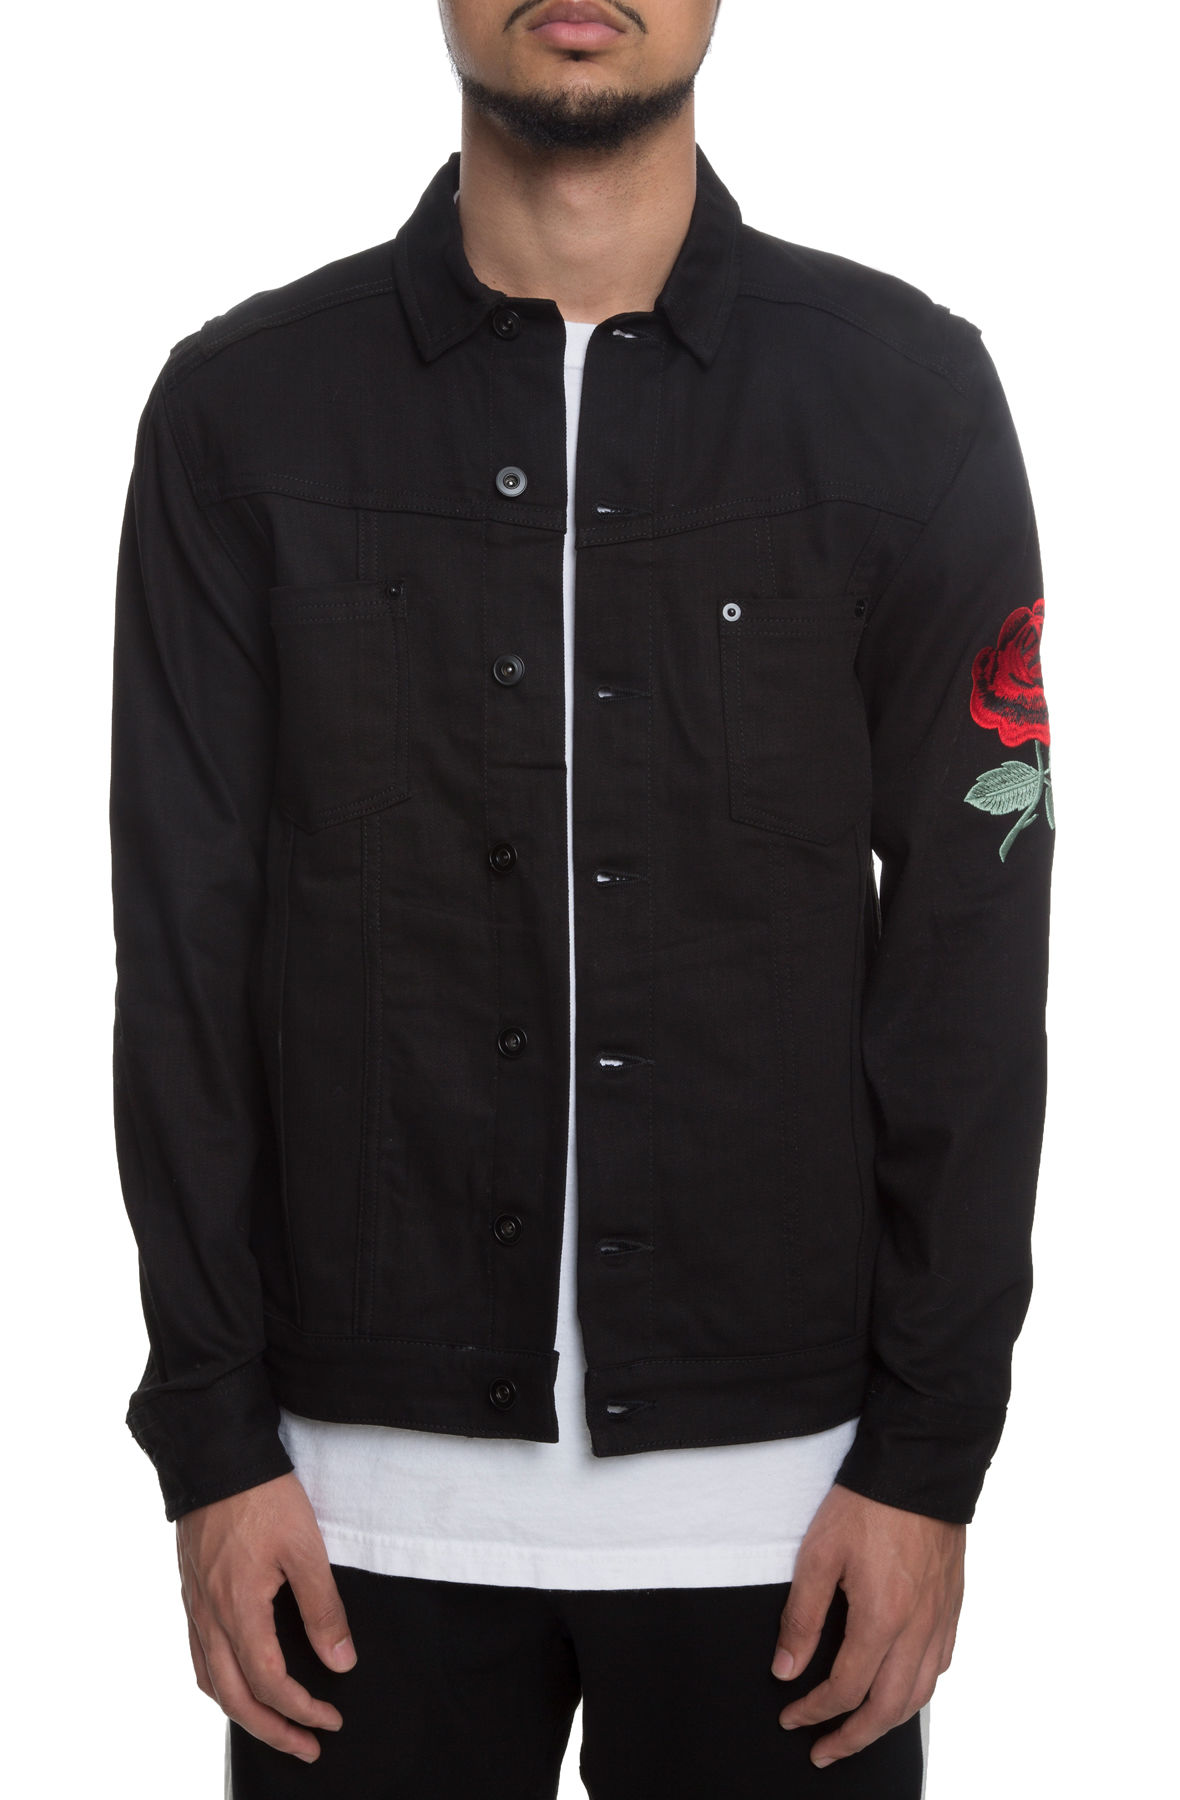 Image of The Nathaniel Jacket in Black